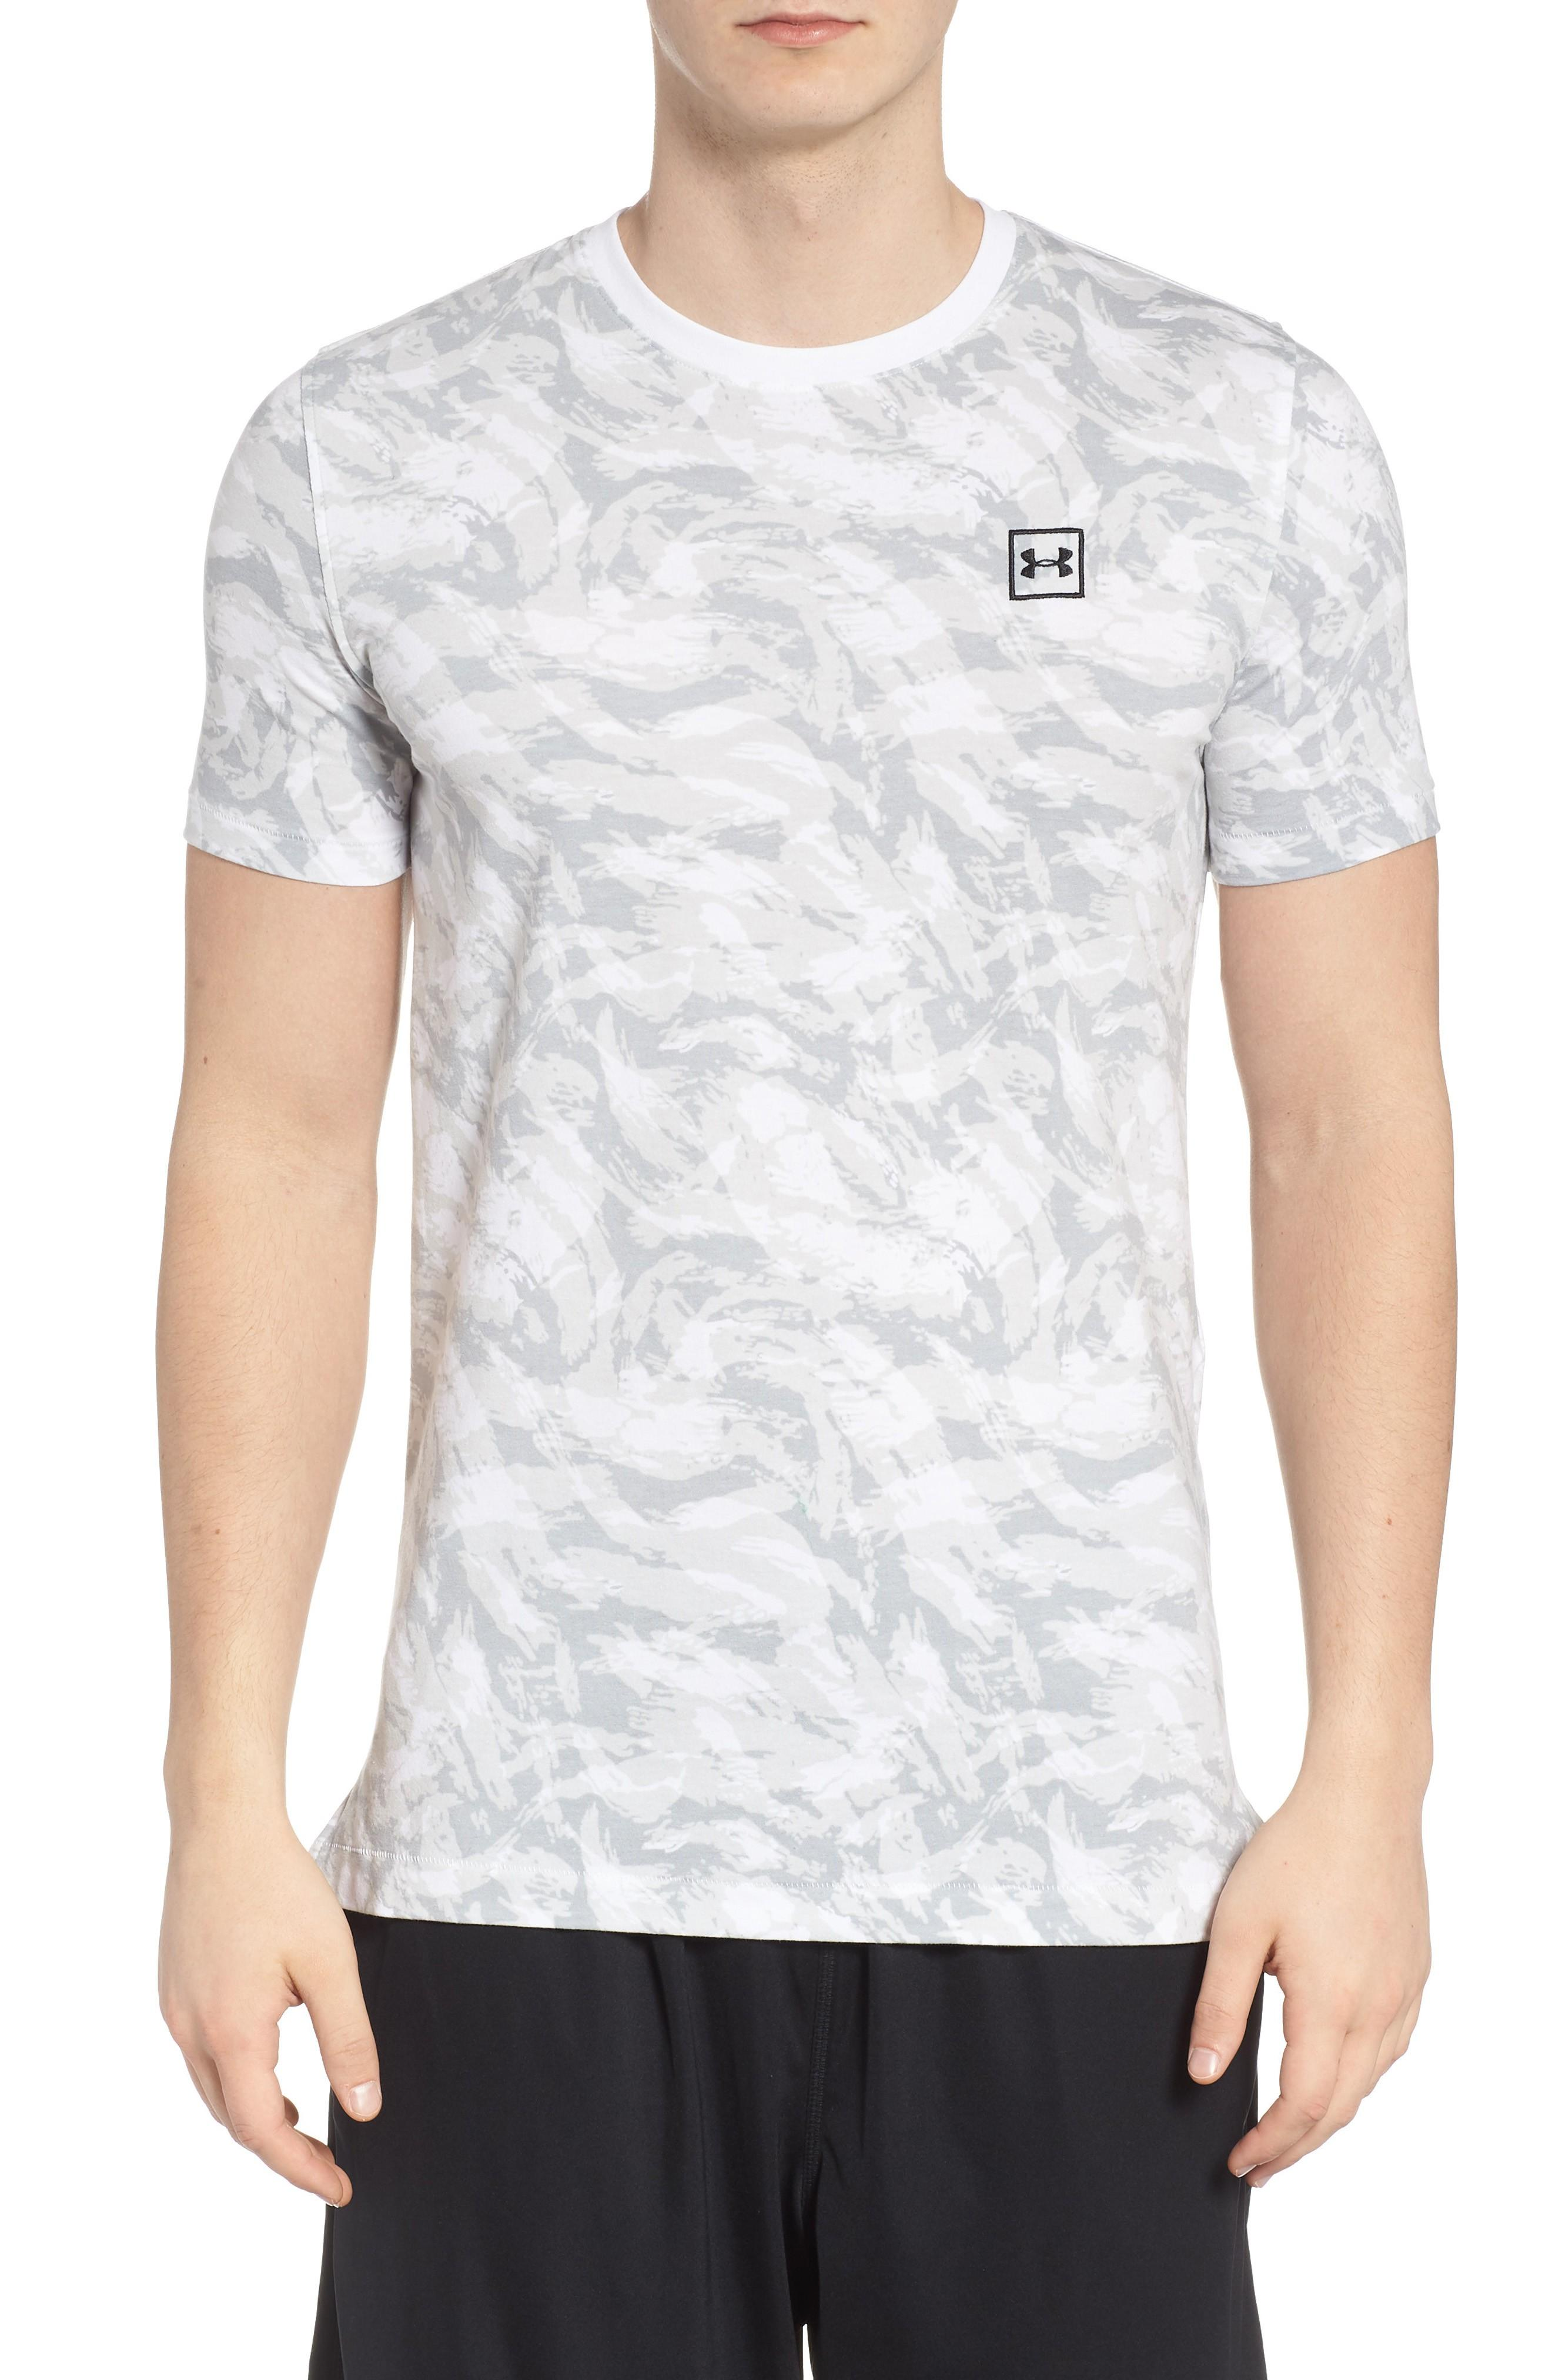 bc871fa0 Under Armour Sportstyle Print Charged Cotton Fitted T-Shirt In White/ Black